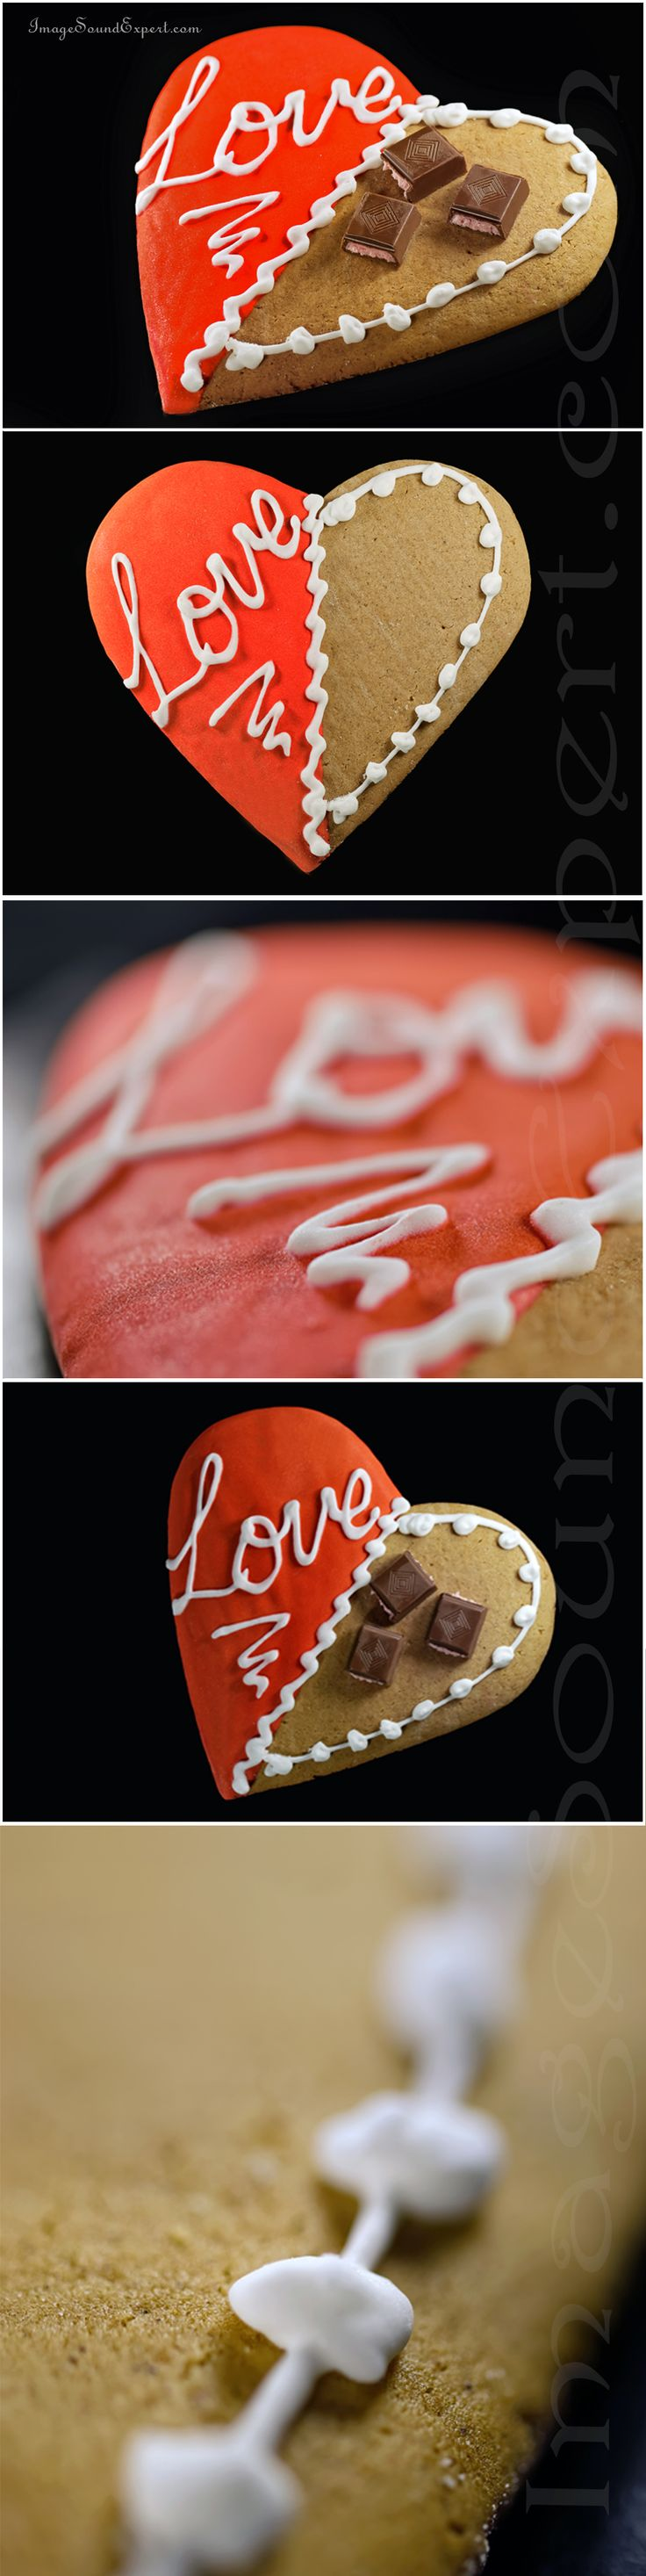 valentines day gingerbread 2016